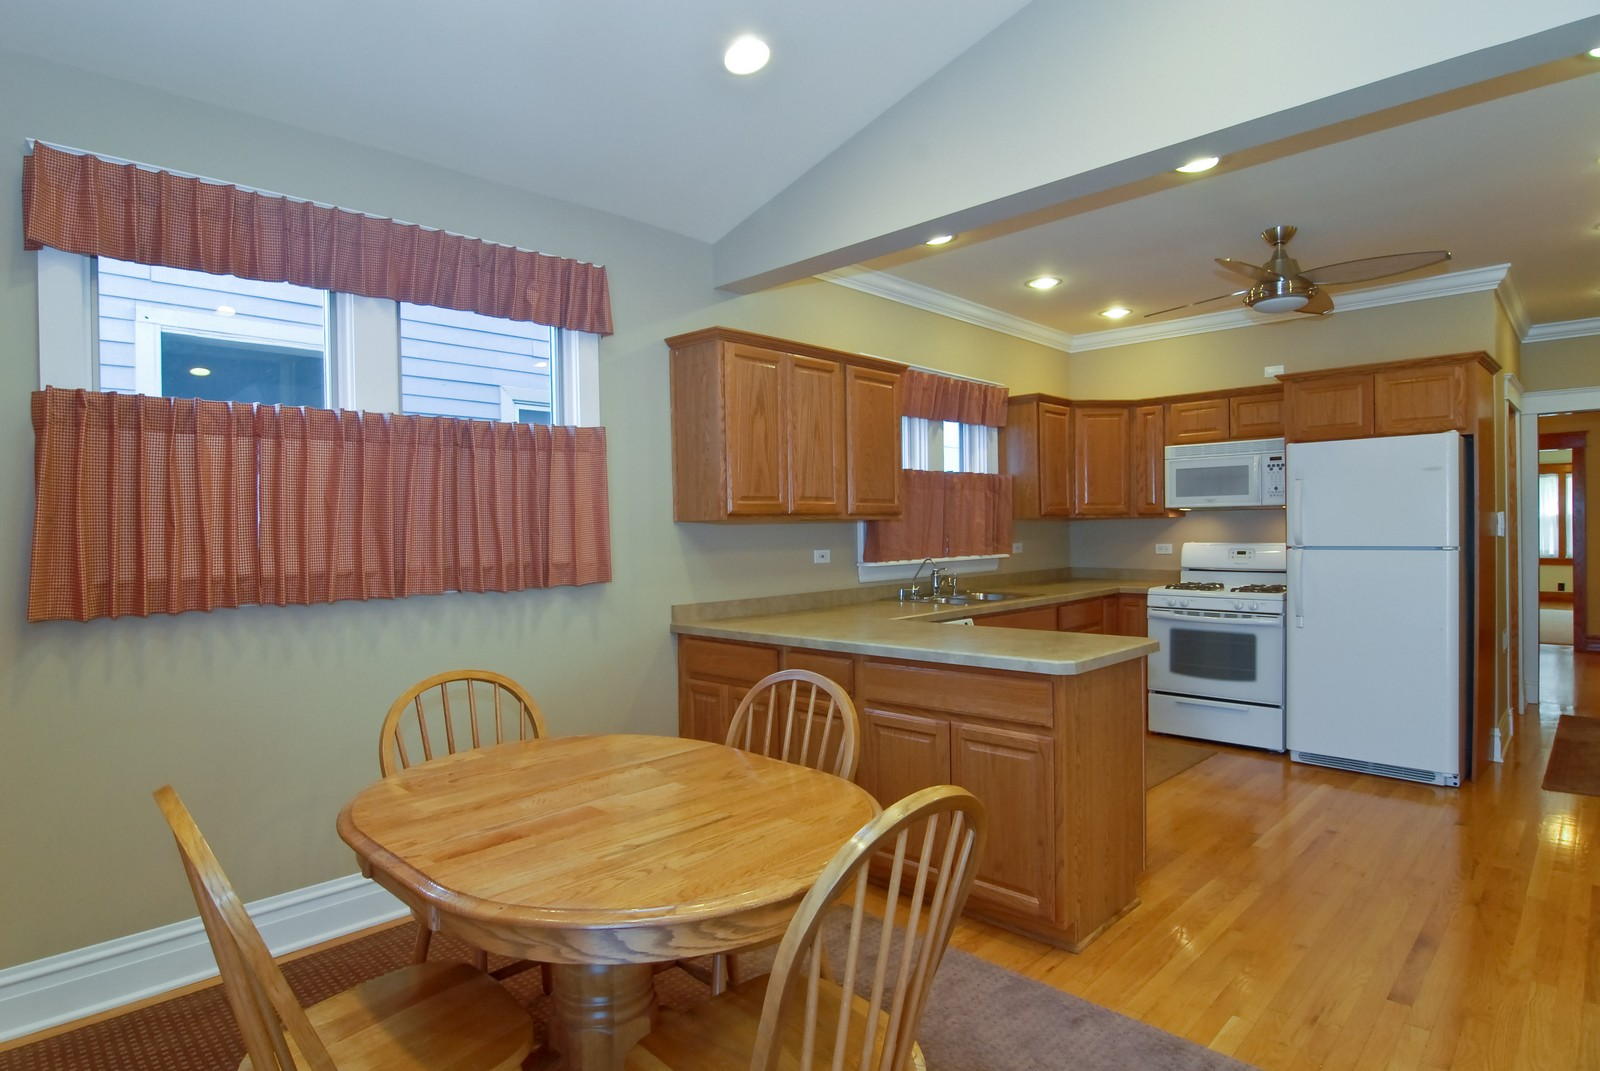 Real Estate Photography - 5334 W Cuyler, Chicago, IL, 60641 - Kitchen / Breakfast Room